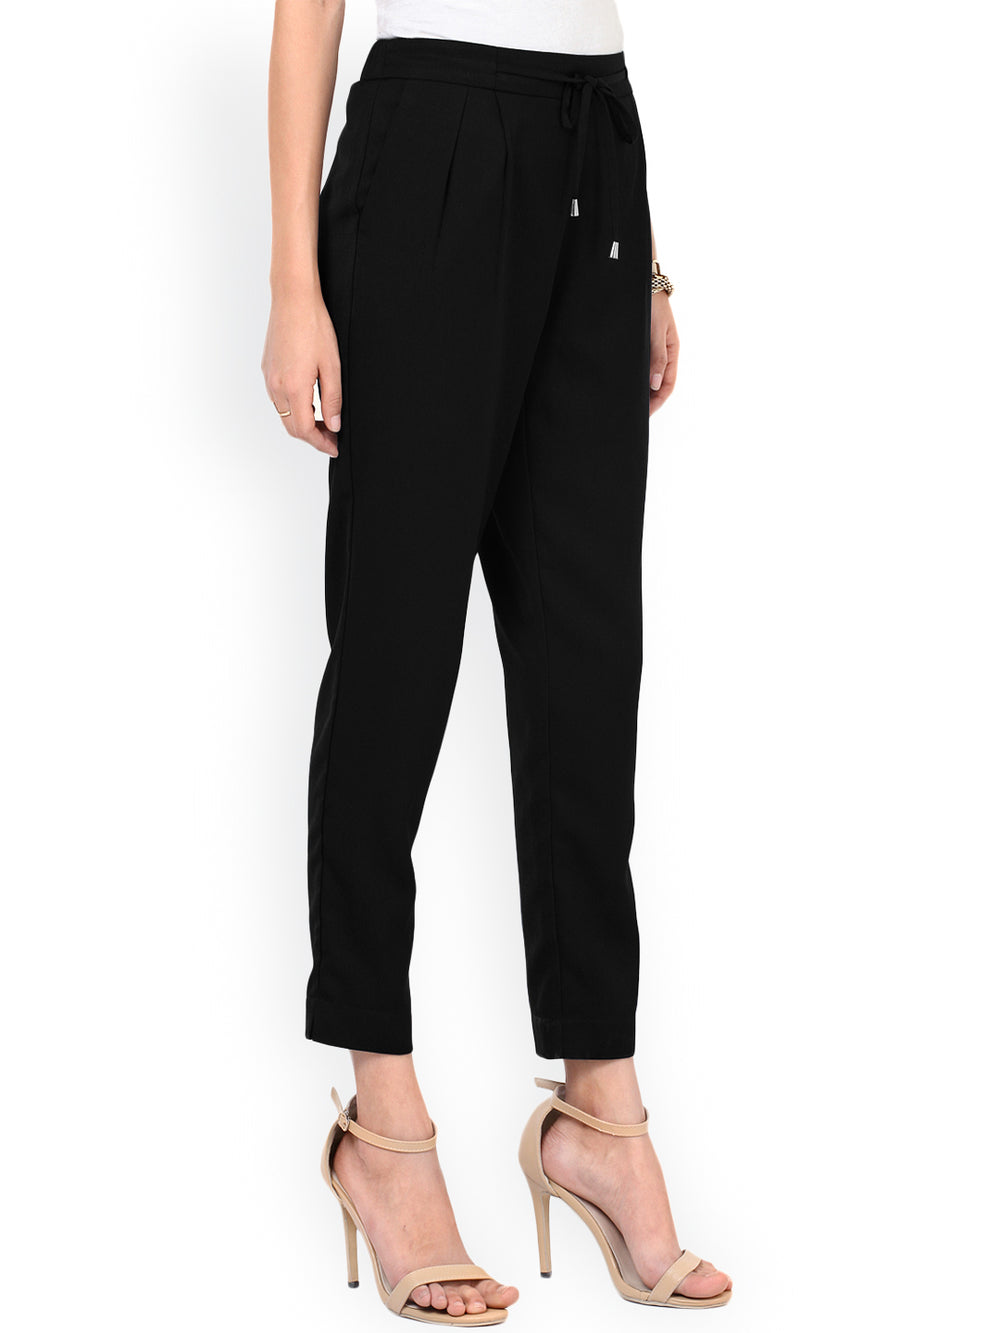 Besiva Women Black Solid Regular Pleated Trousers